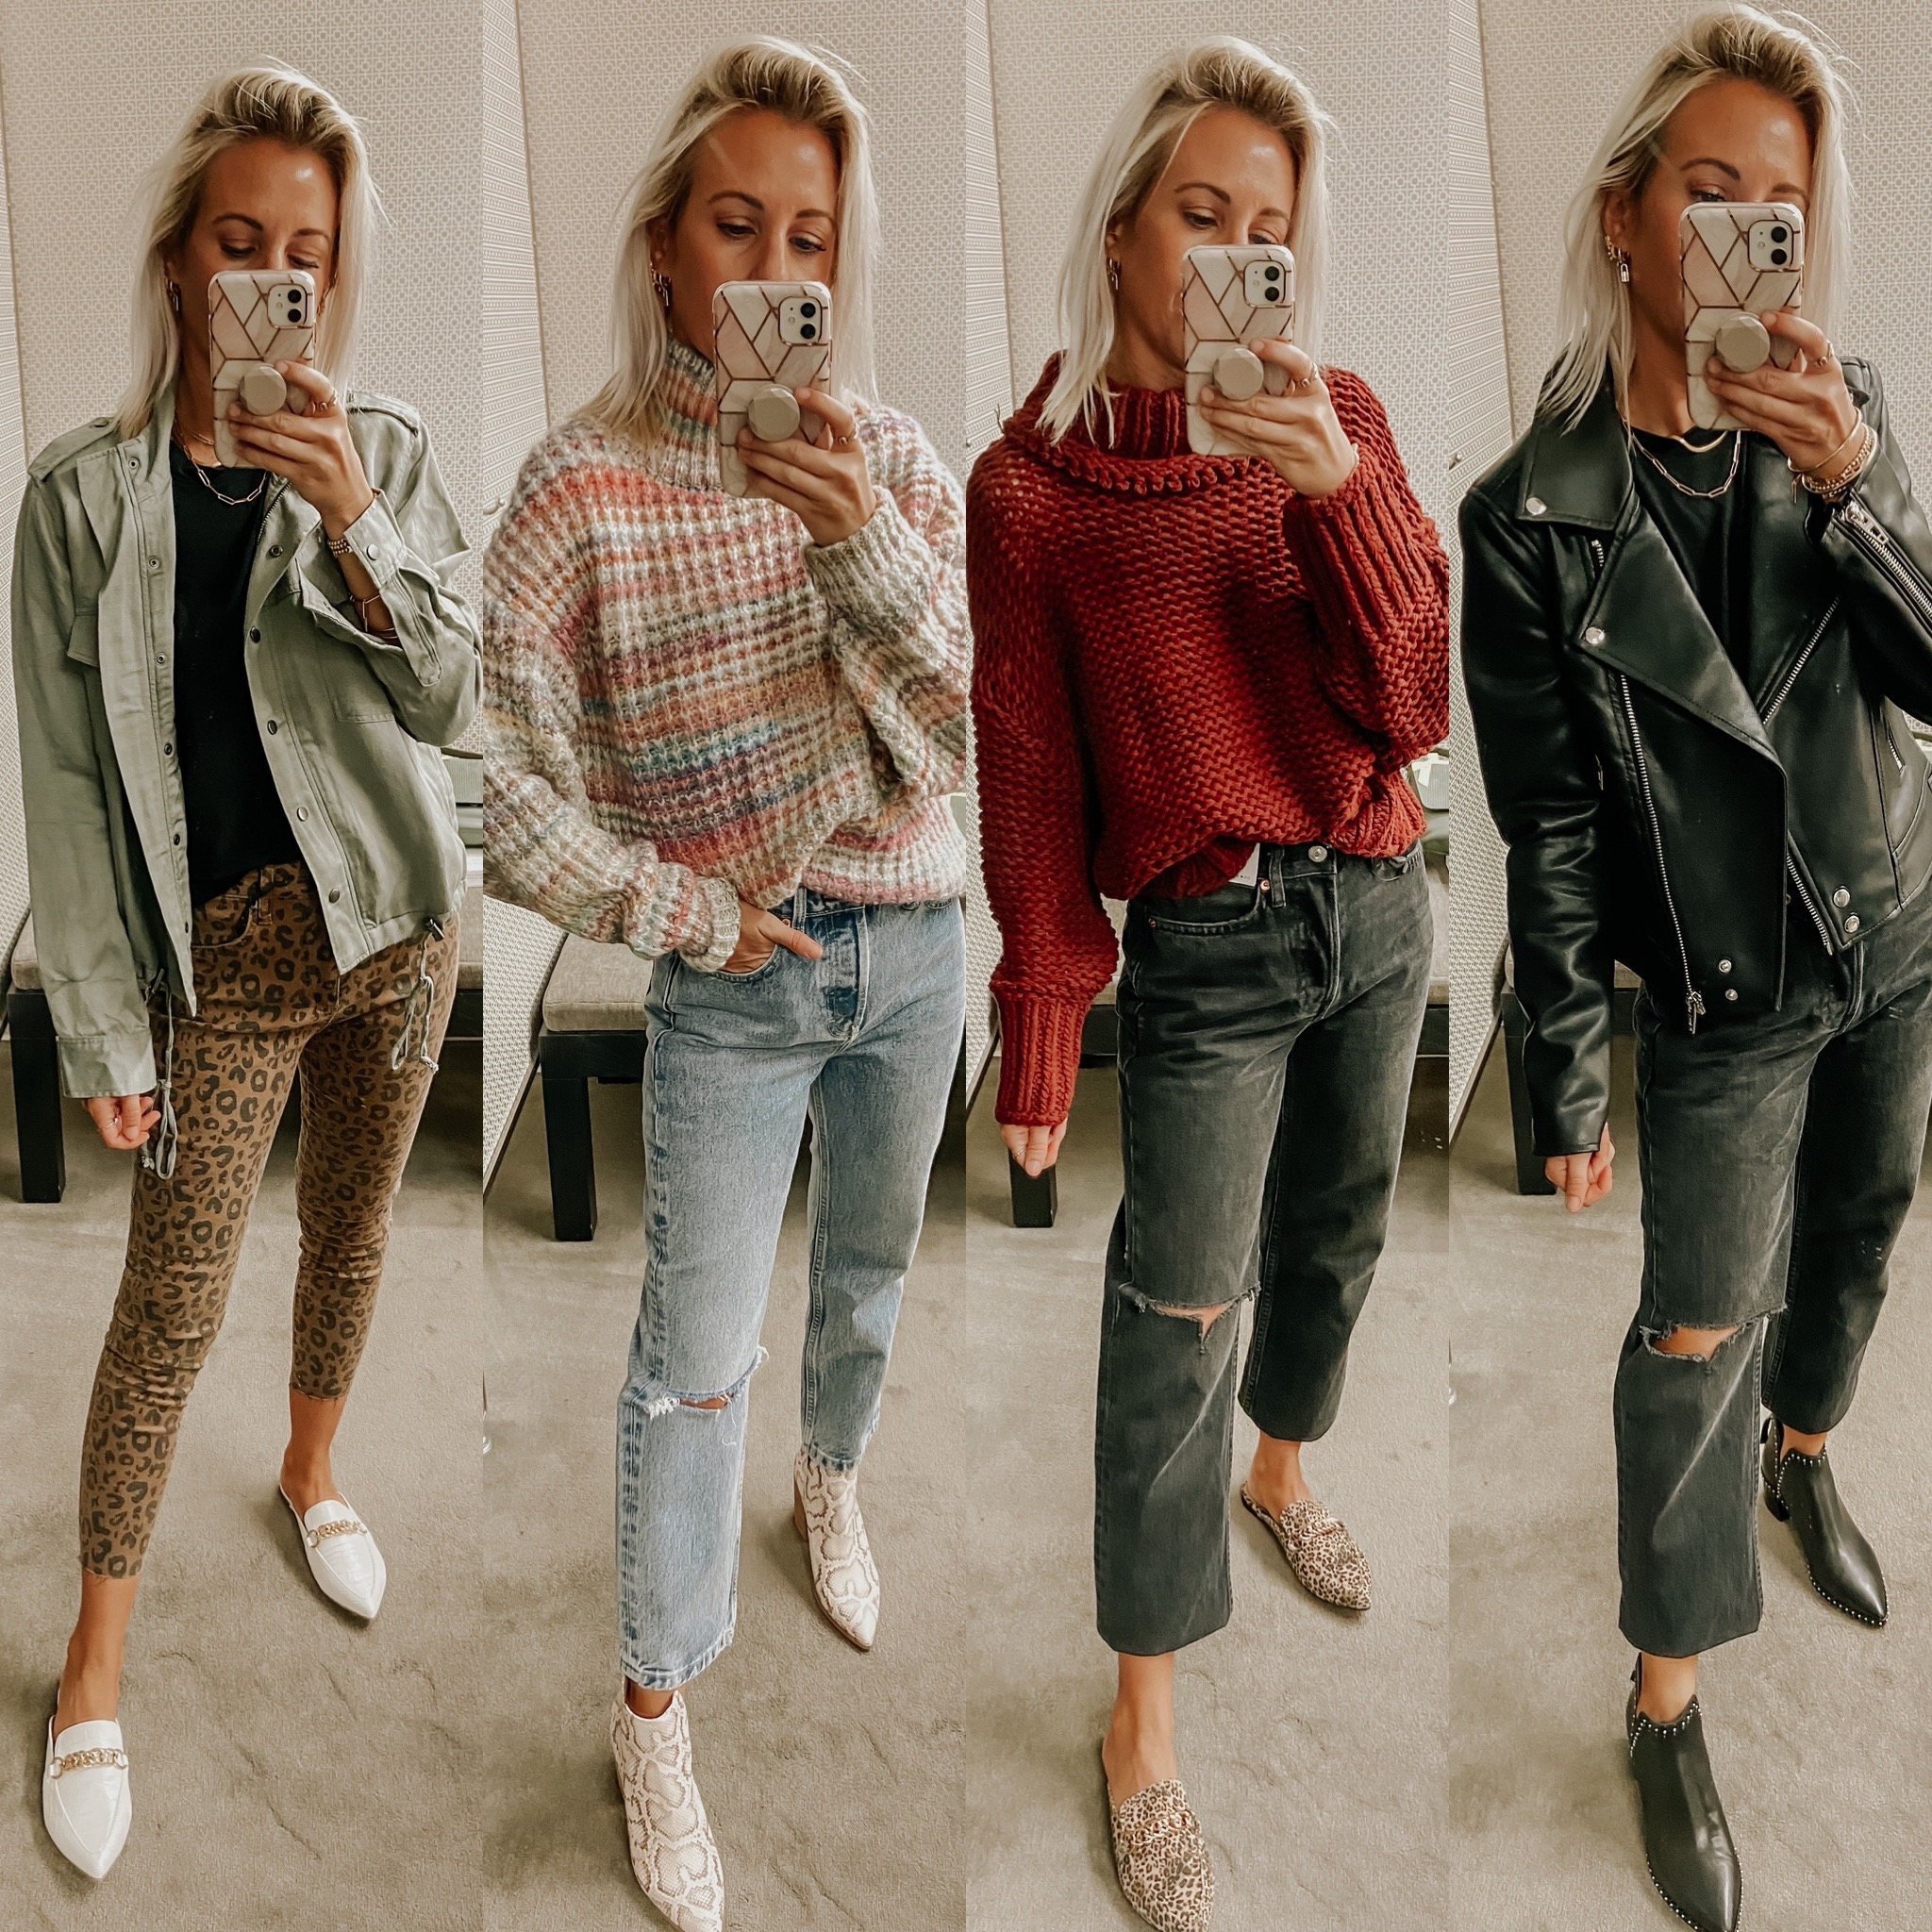 NORDSTROM SALE 1ST TRY-ON-Jaclyn De Leon Style + sharing my first in store try-on of the nordstrom sale + what I plan on ordering online